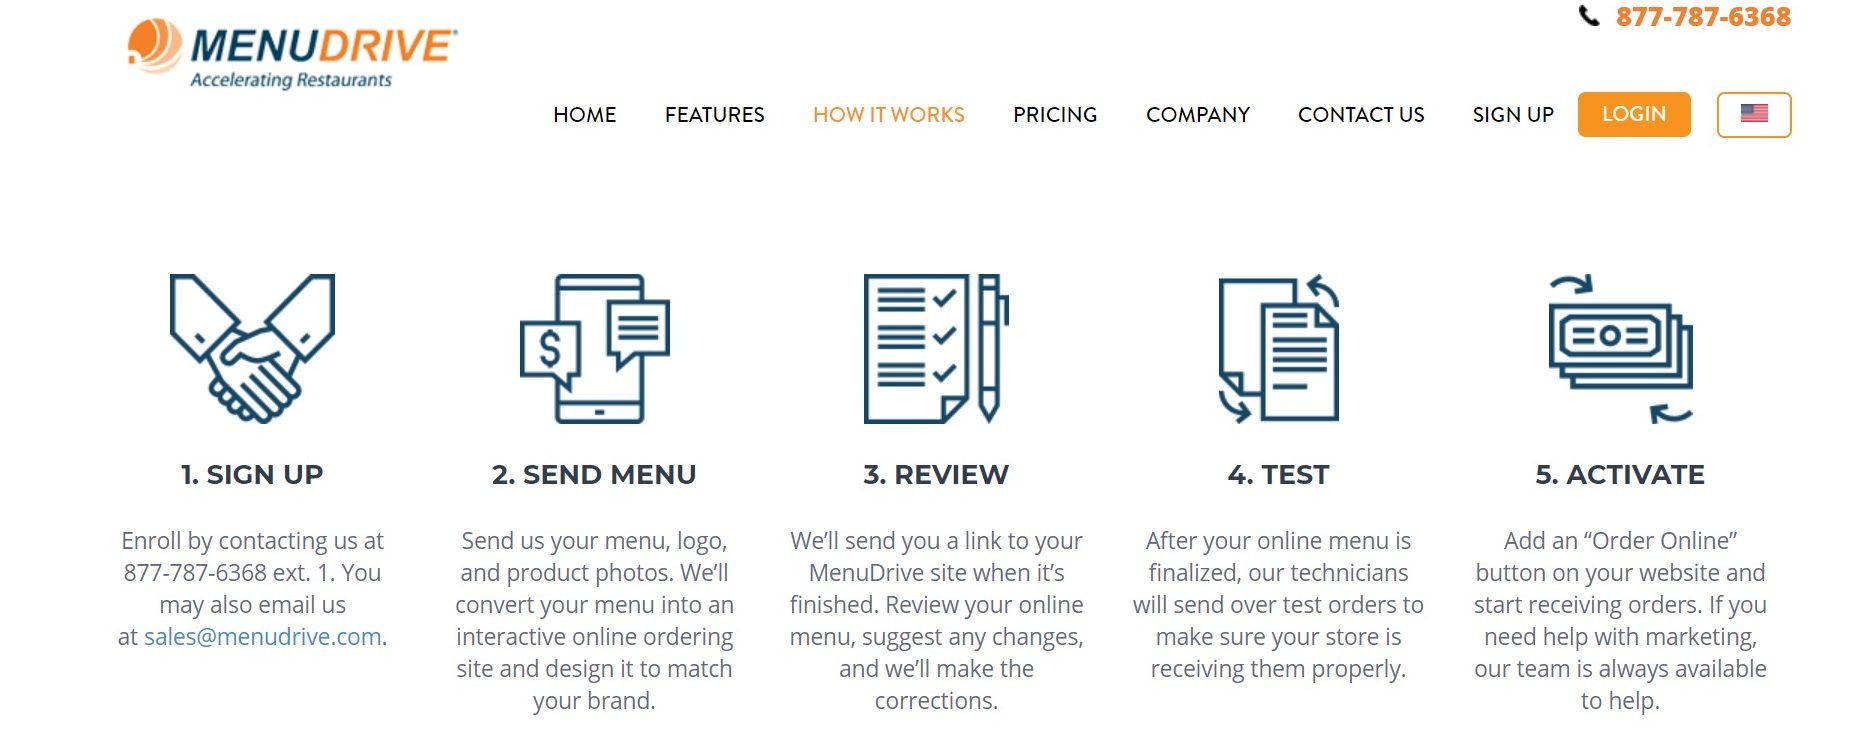 steps to getting your restaurant live with MenuDrive